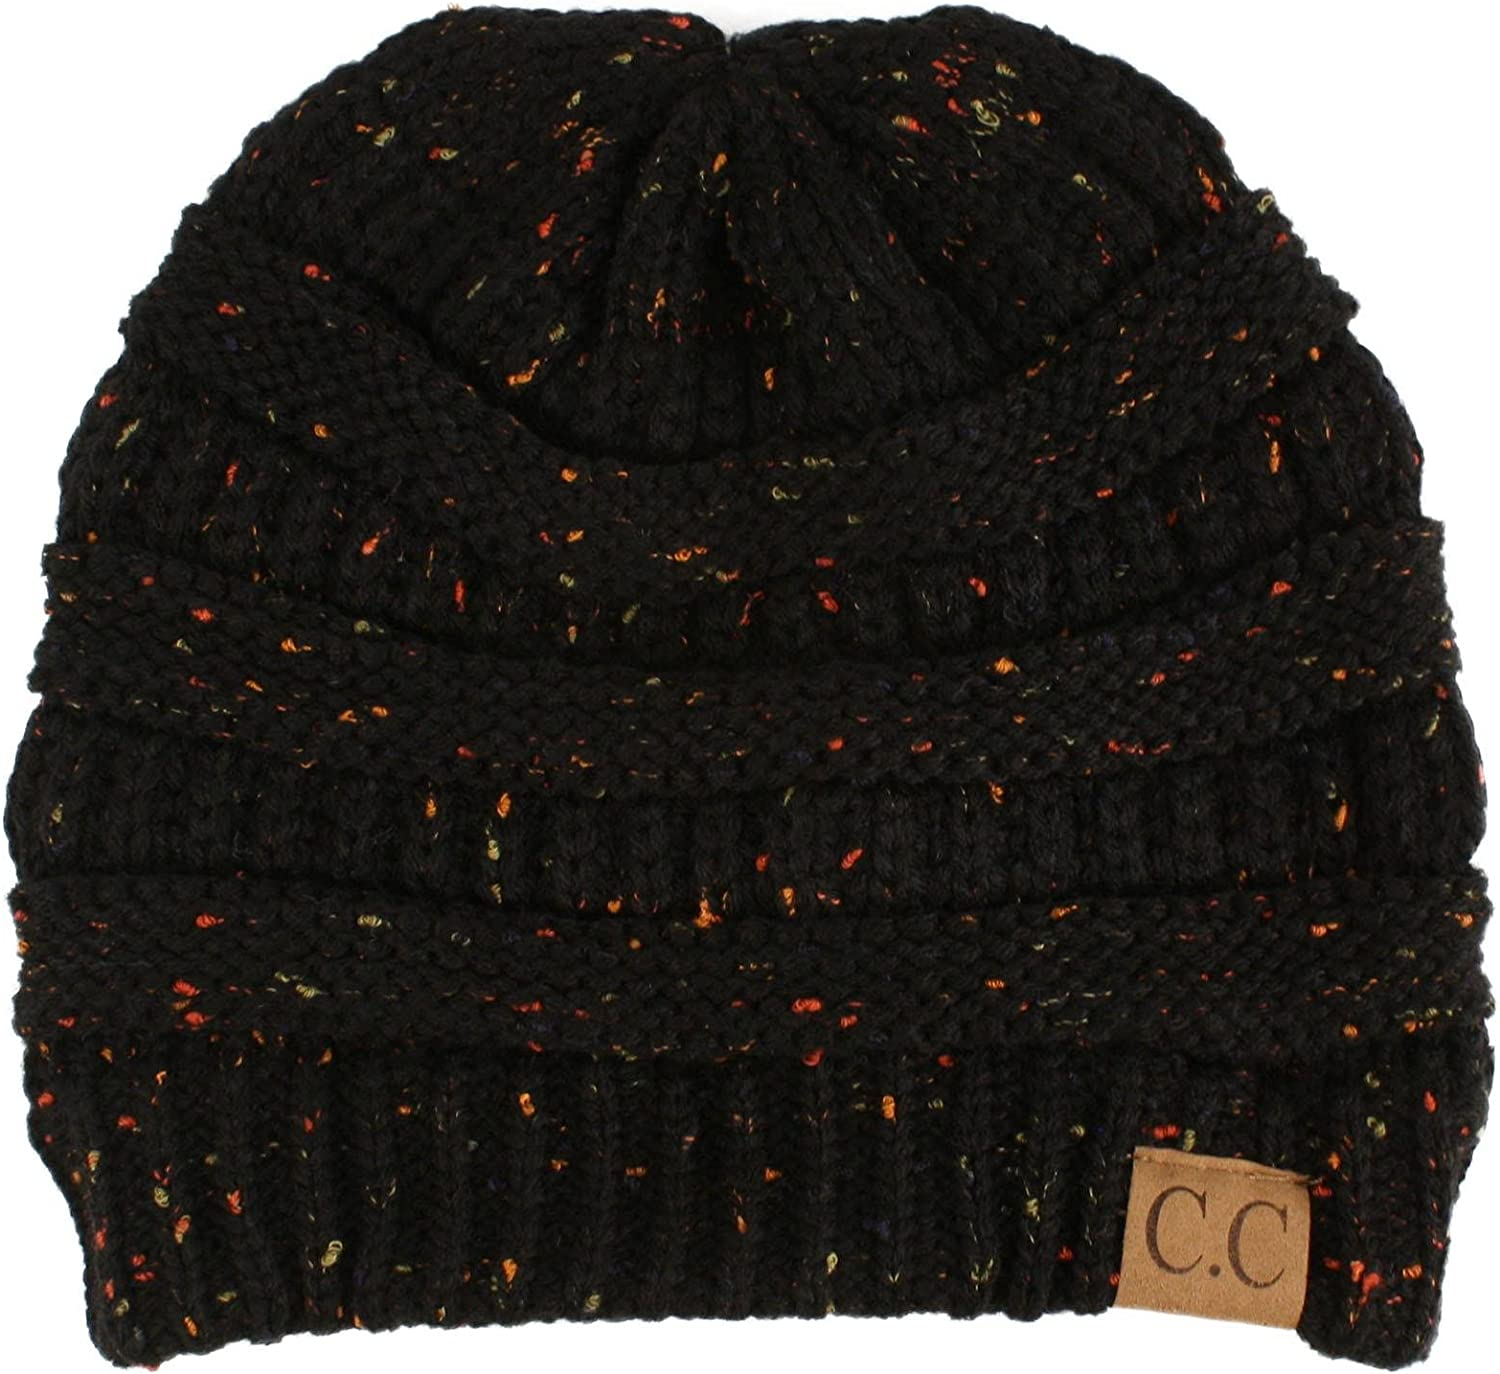 Winter Trendy Soft Cable Knit Stretchy Warm Ribbed Beanie Skully Ski Hat Cap